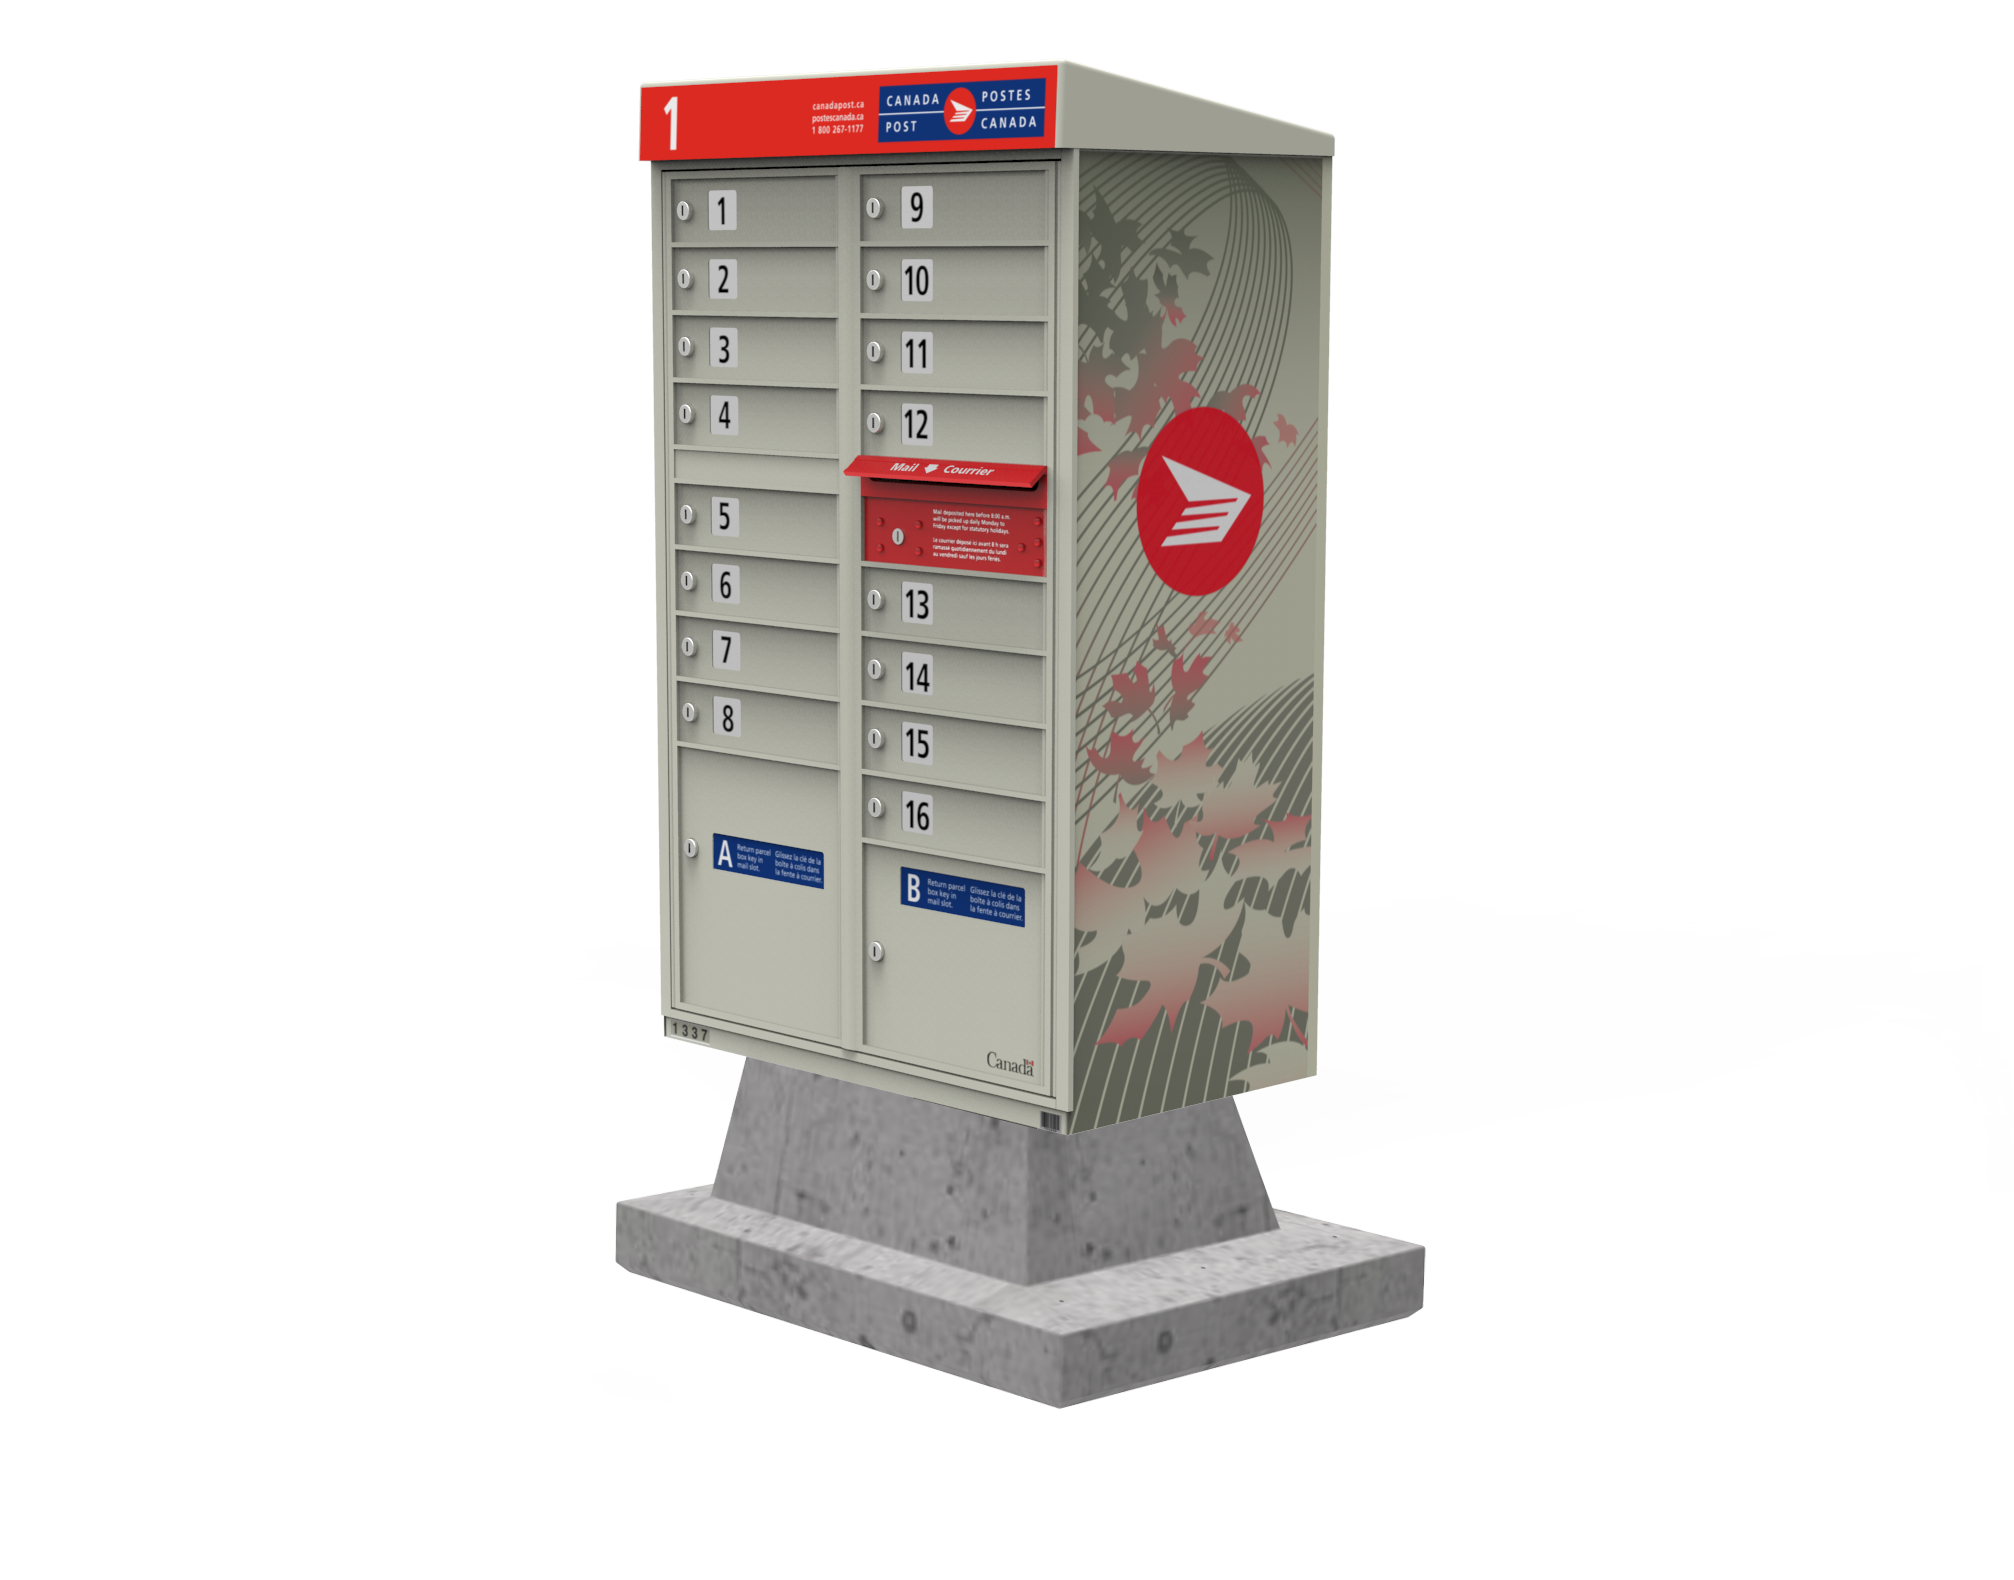 At Canada Post, the door-to-door delivery program was transitioning to a community mailbox (CMB) based delivery mode. New bases were needed when concrete pads weren't appropriate (e.g. if it was in a parking lot, or a temporary installation).